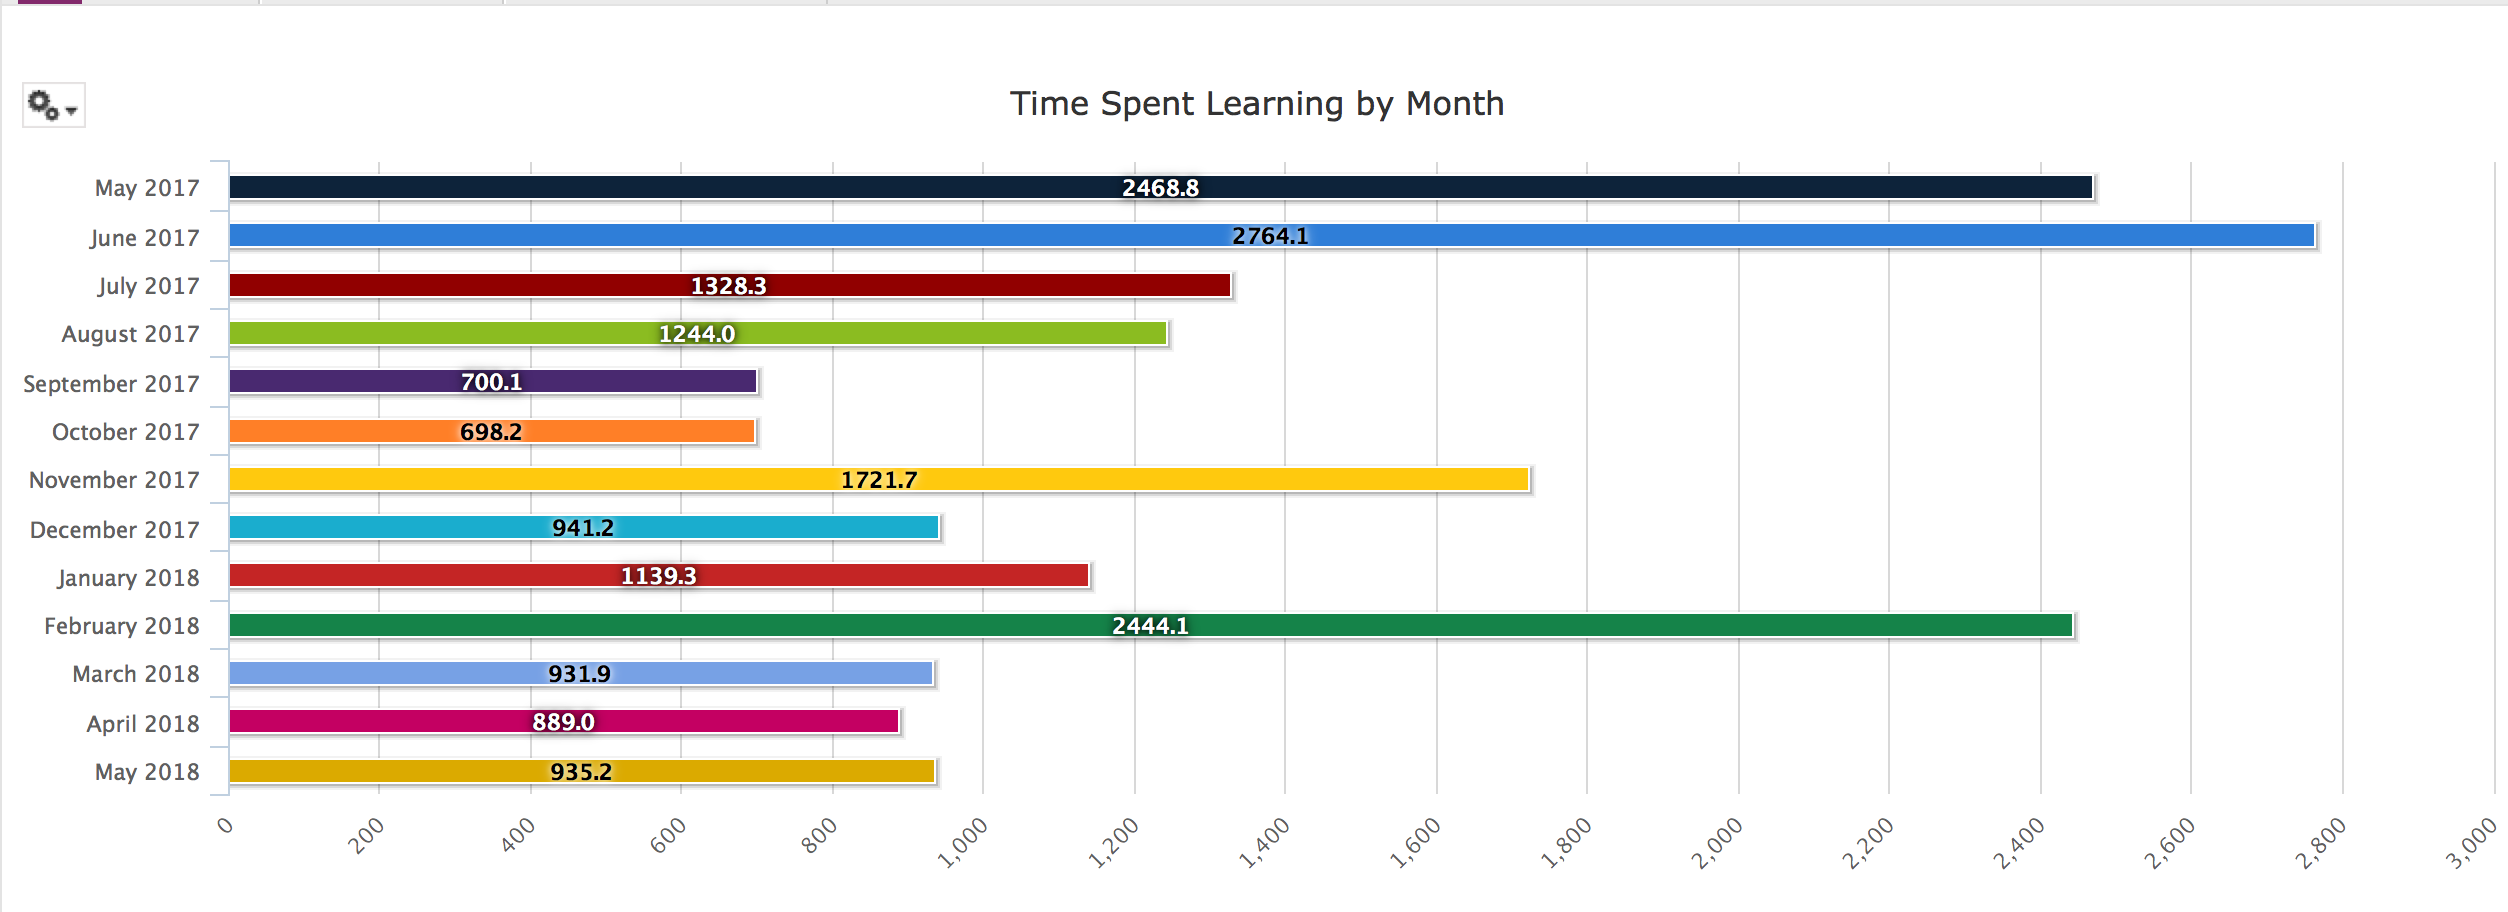 horizontal bar graph showing time spent learning by month